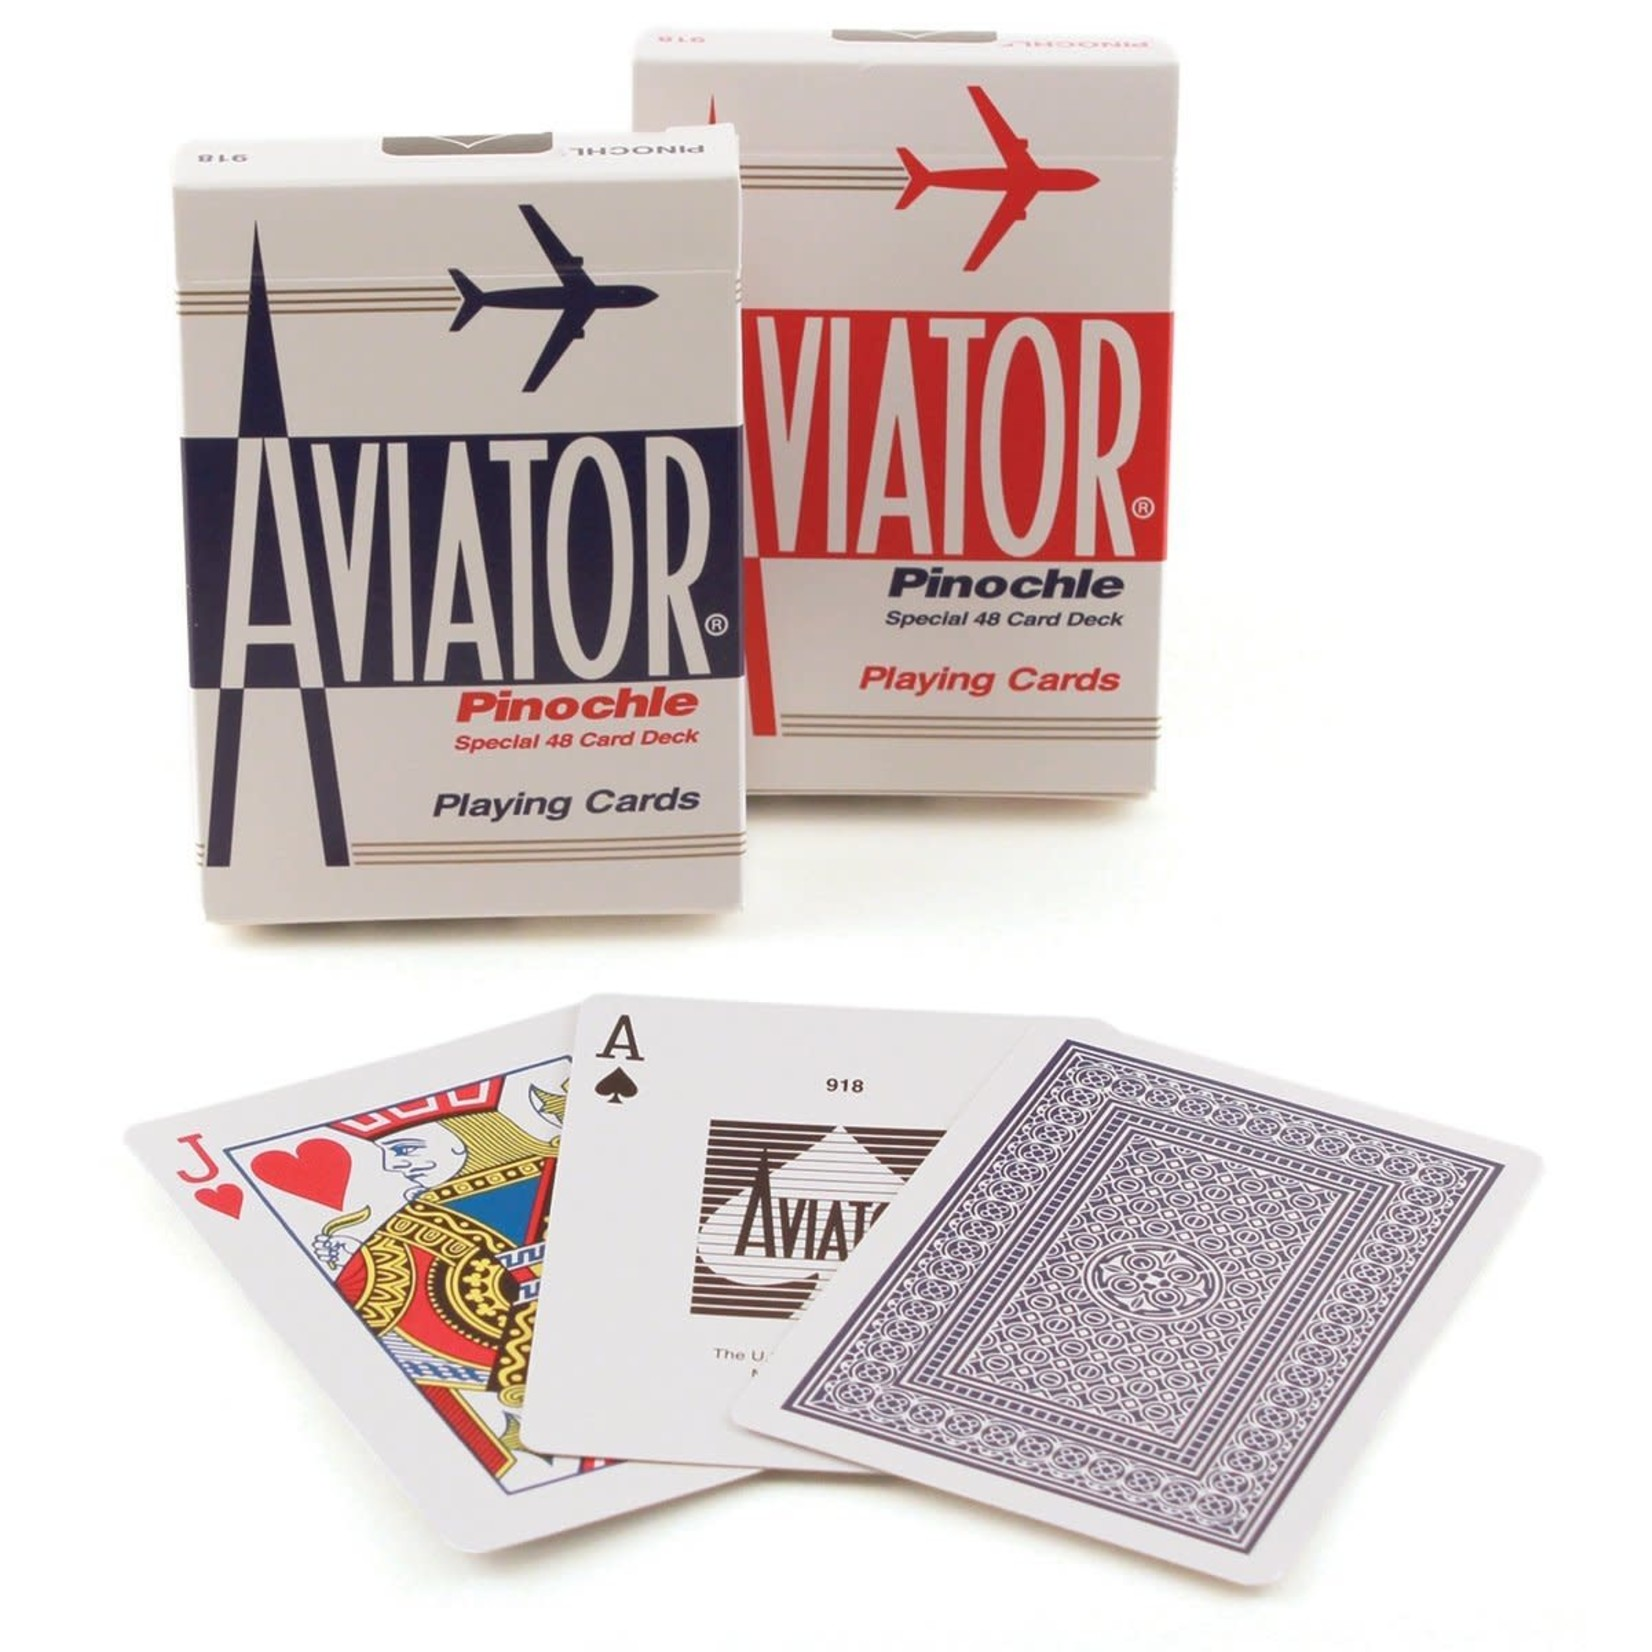 The United States Playing Card Company Aviator Pinochle